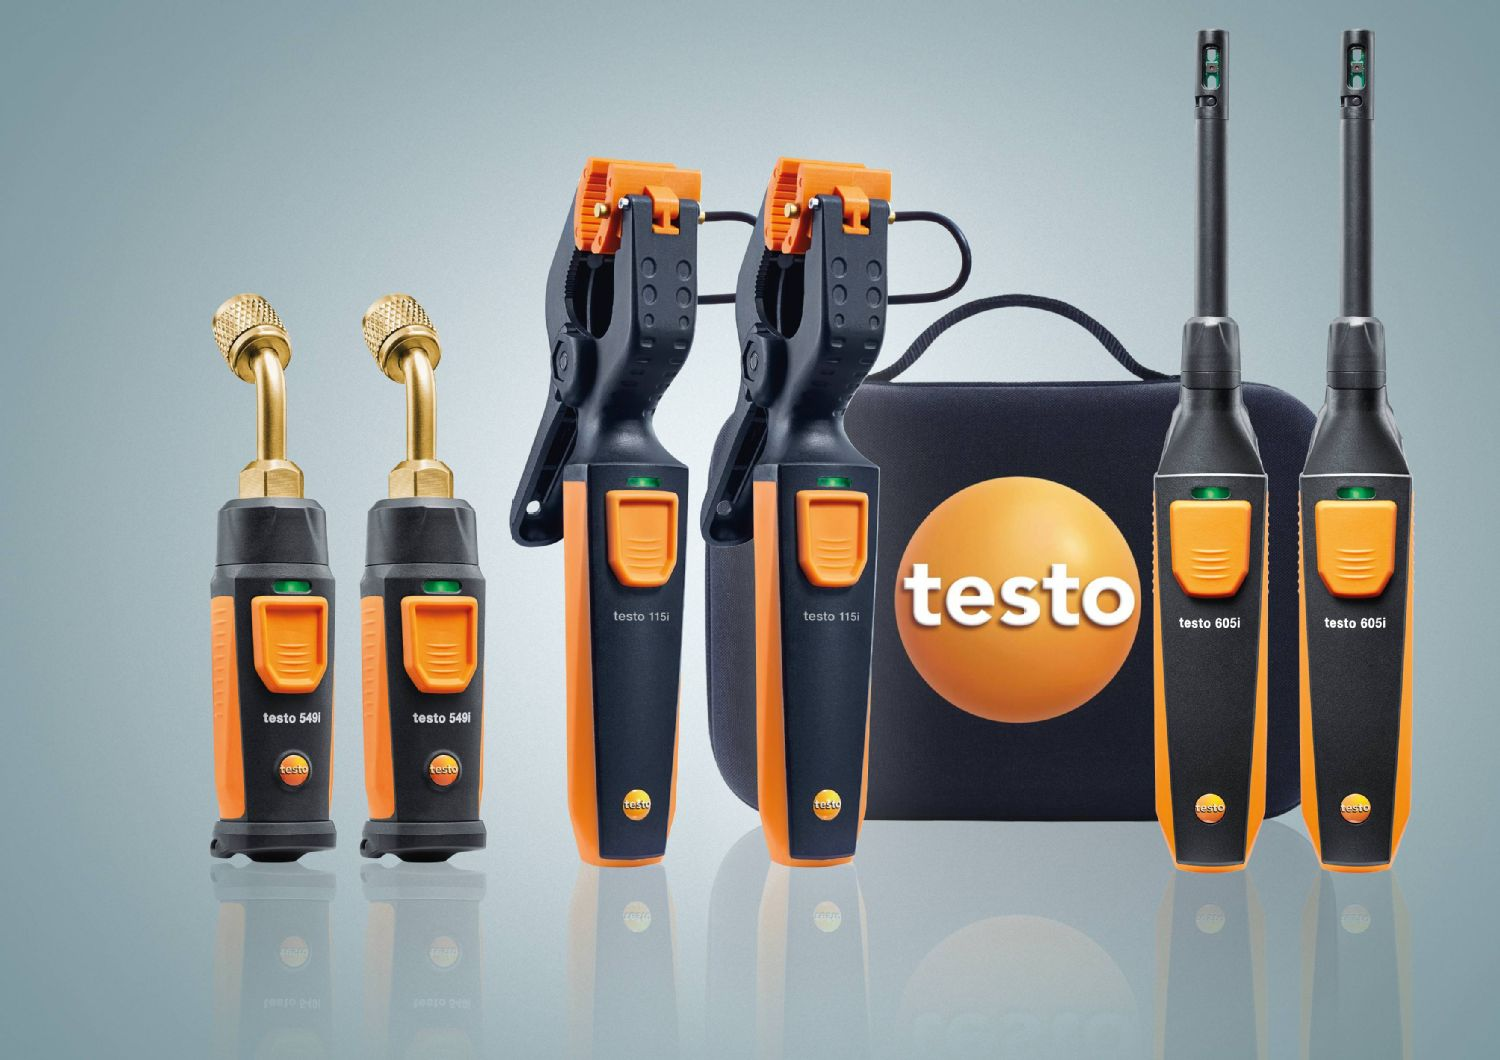 refrigeration-2020-testo-smart-probes-ACR-test-load-3508x2840.jpg